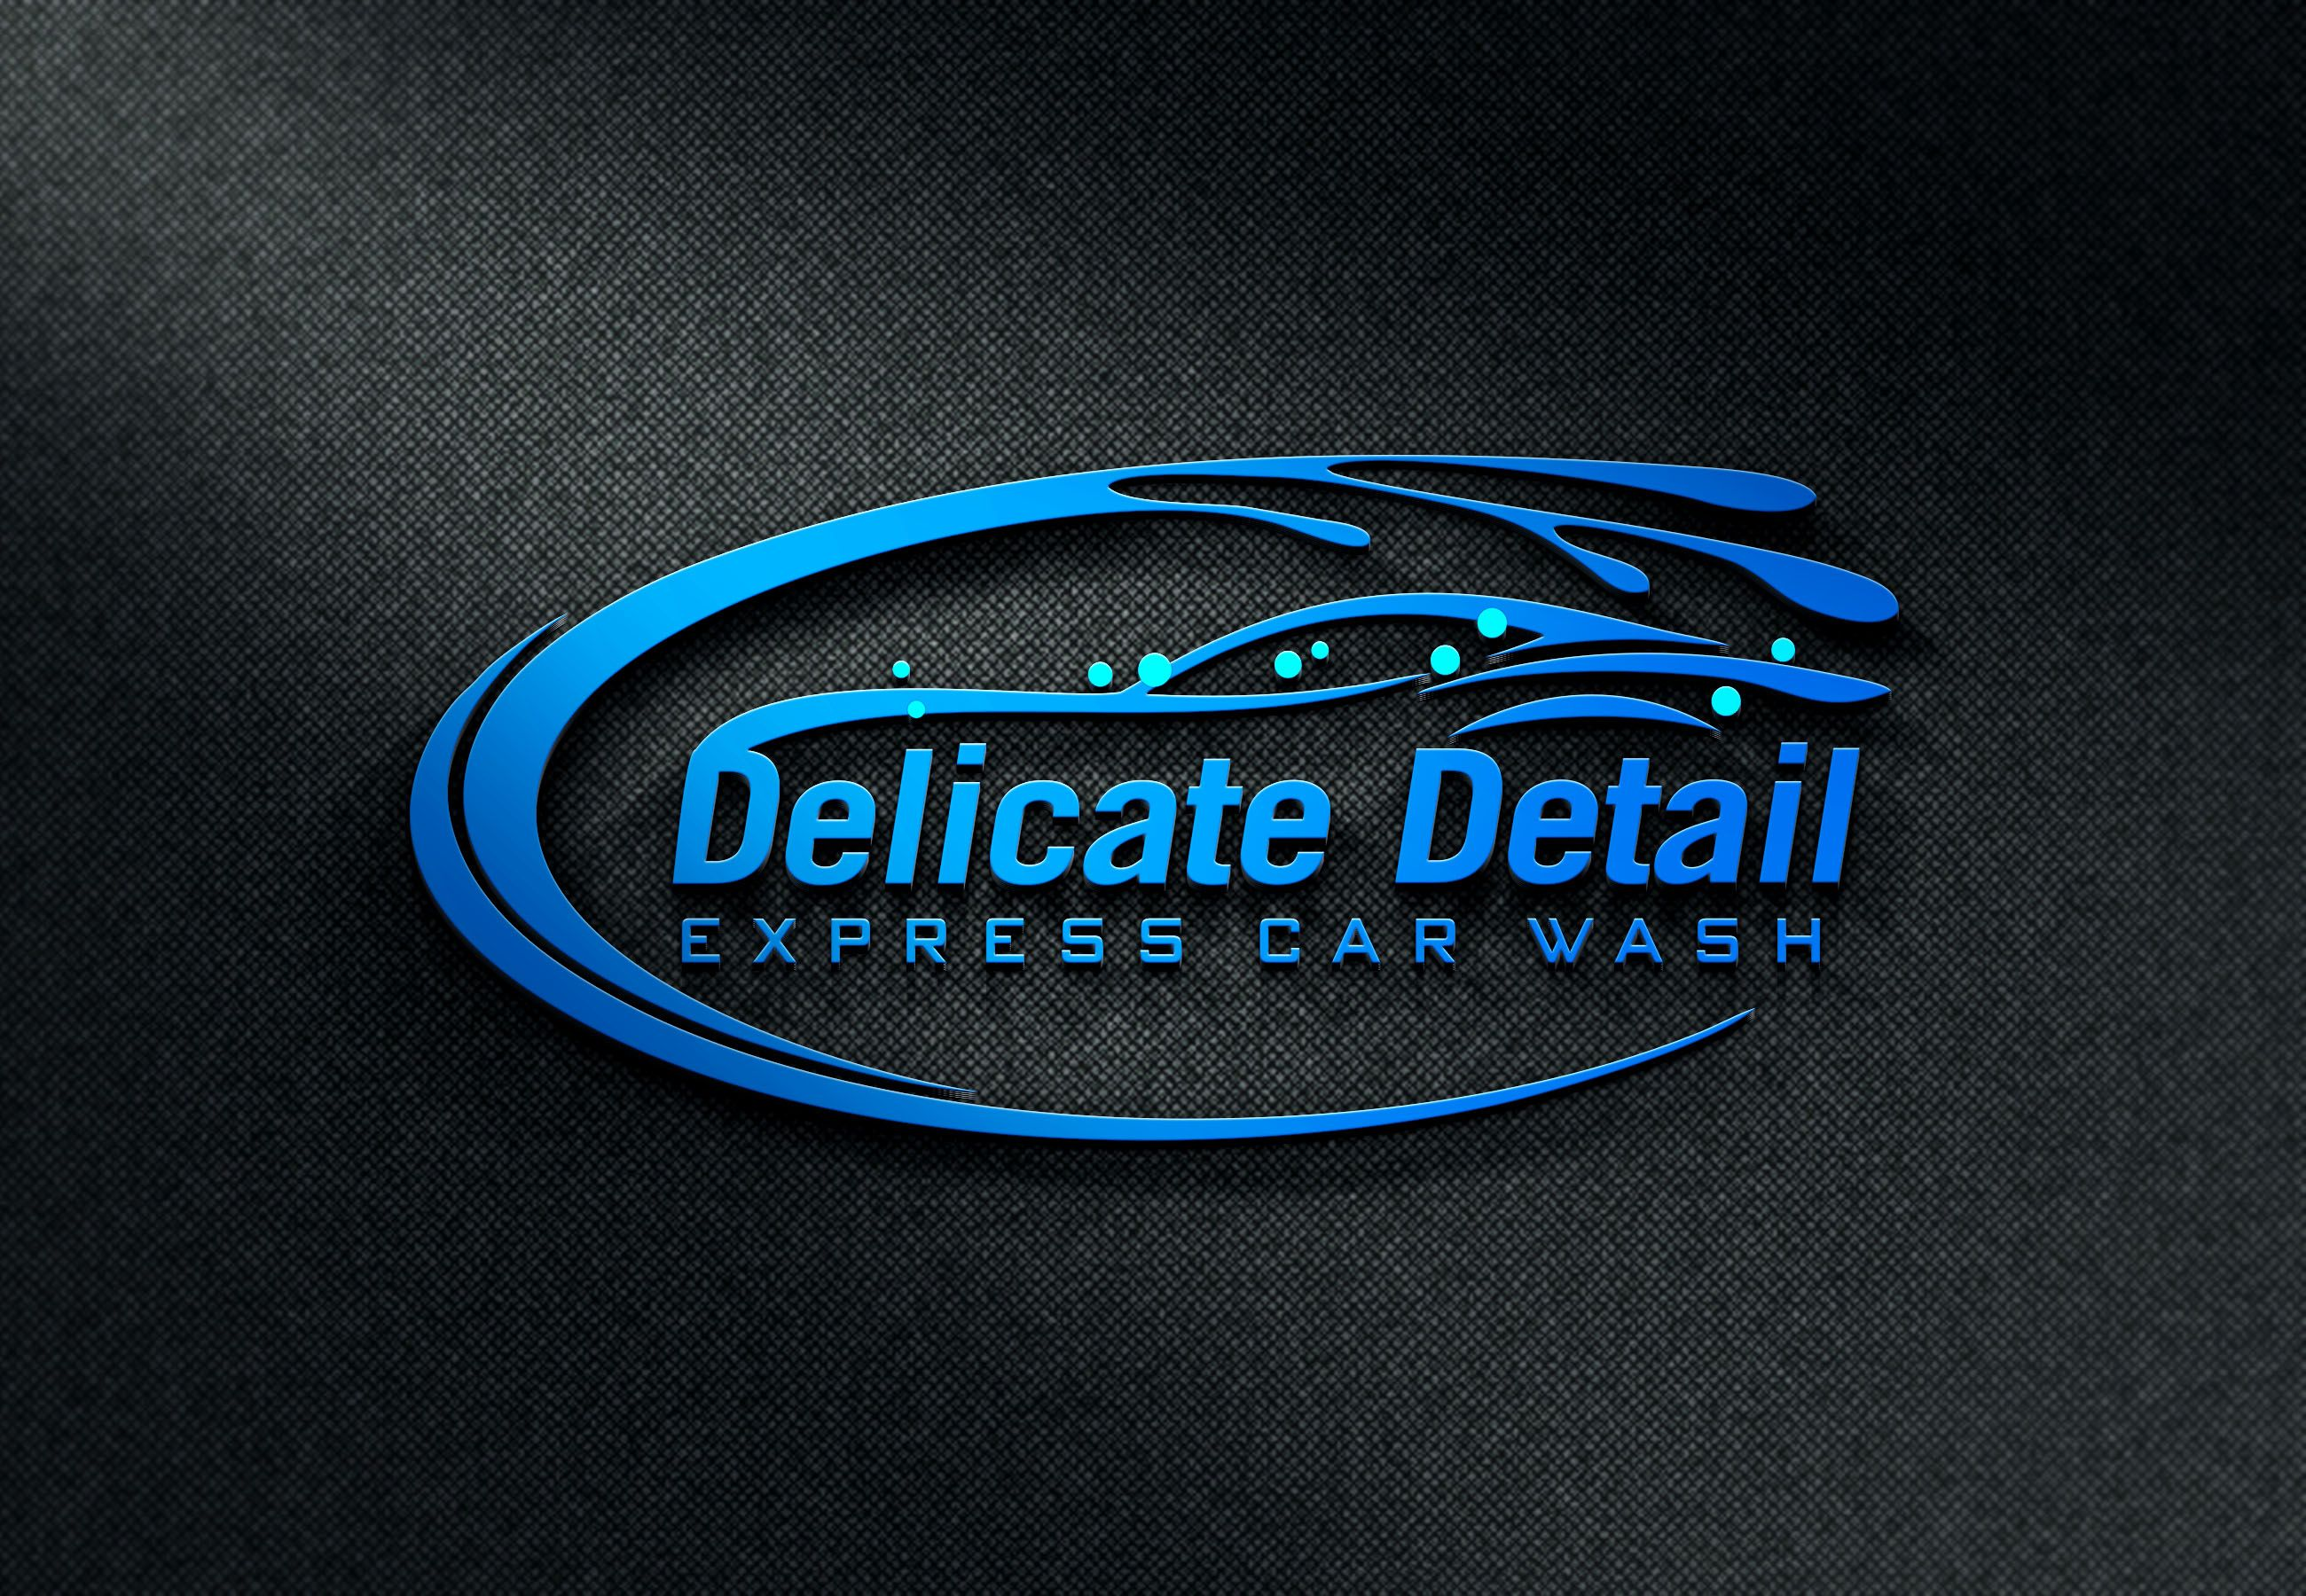 Design logo for business express car wash #Detailing #Car.